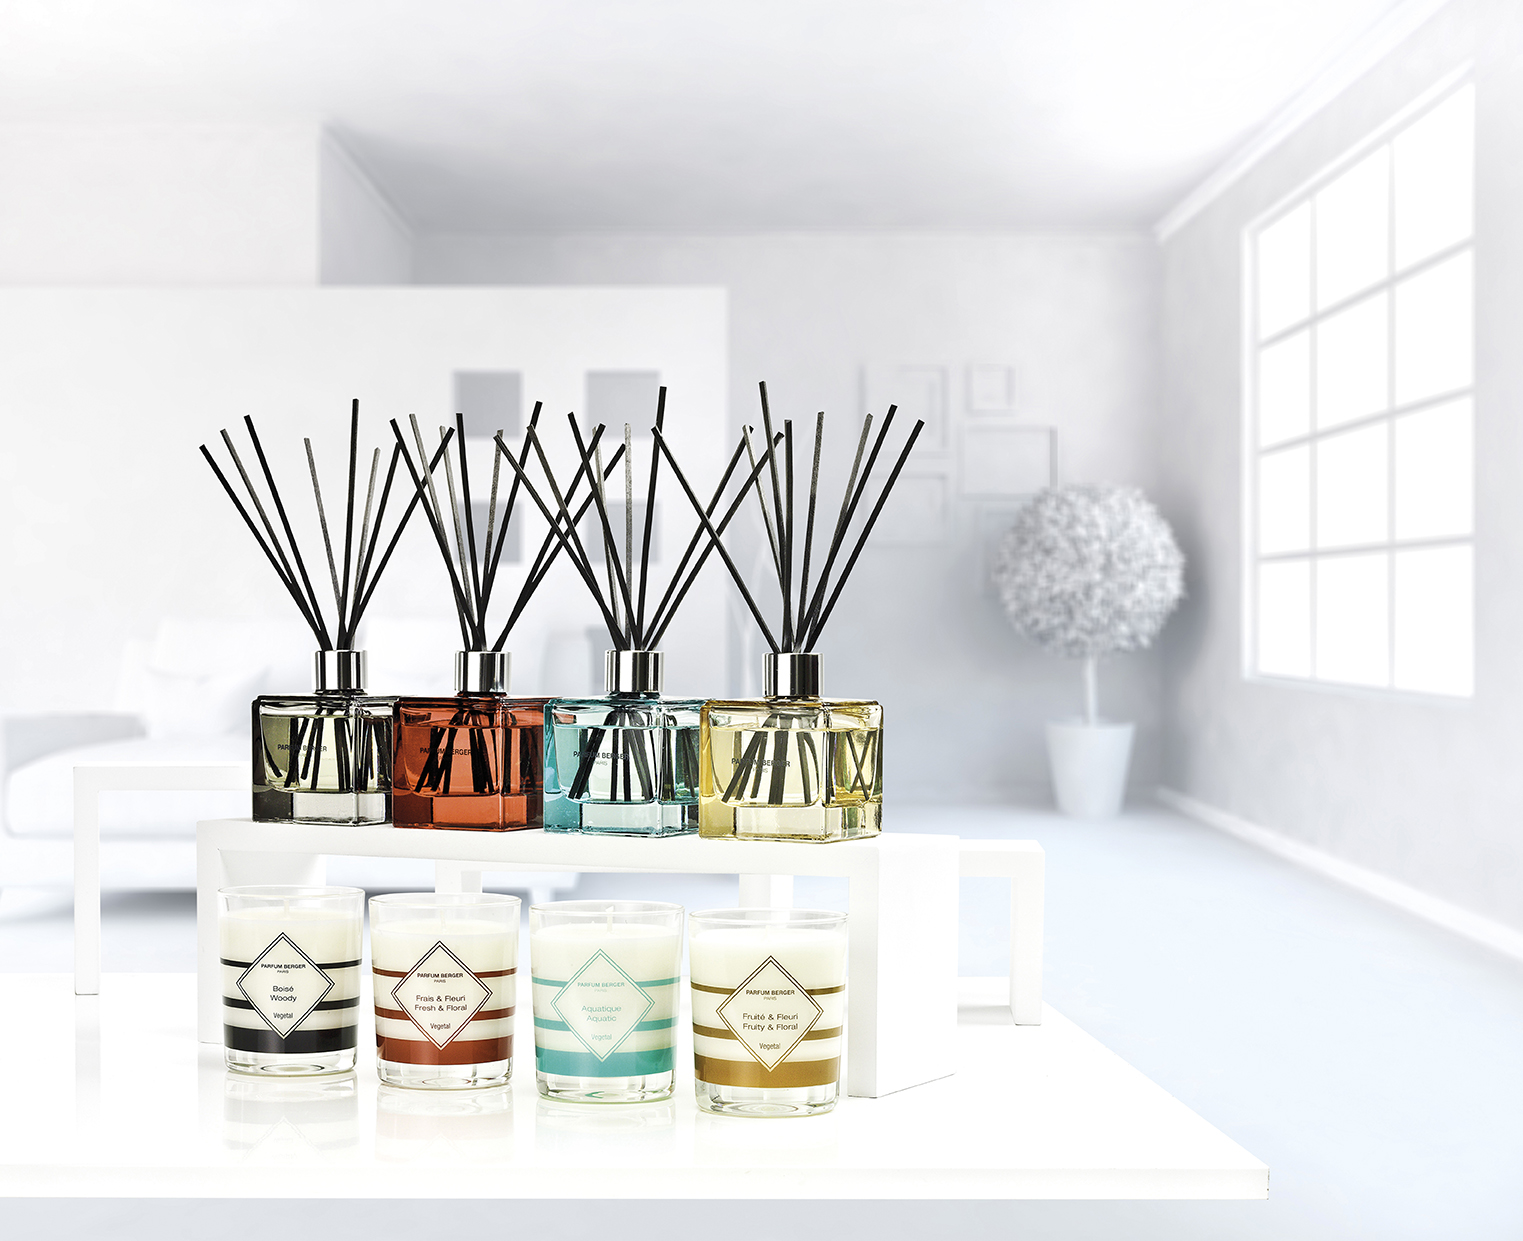 ANTI-ODOR BOUQUETS & CANDLES